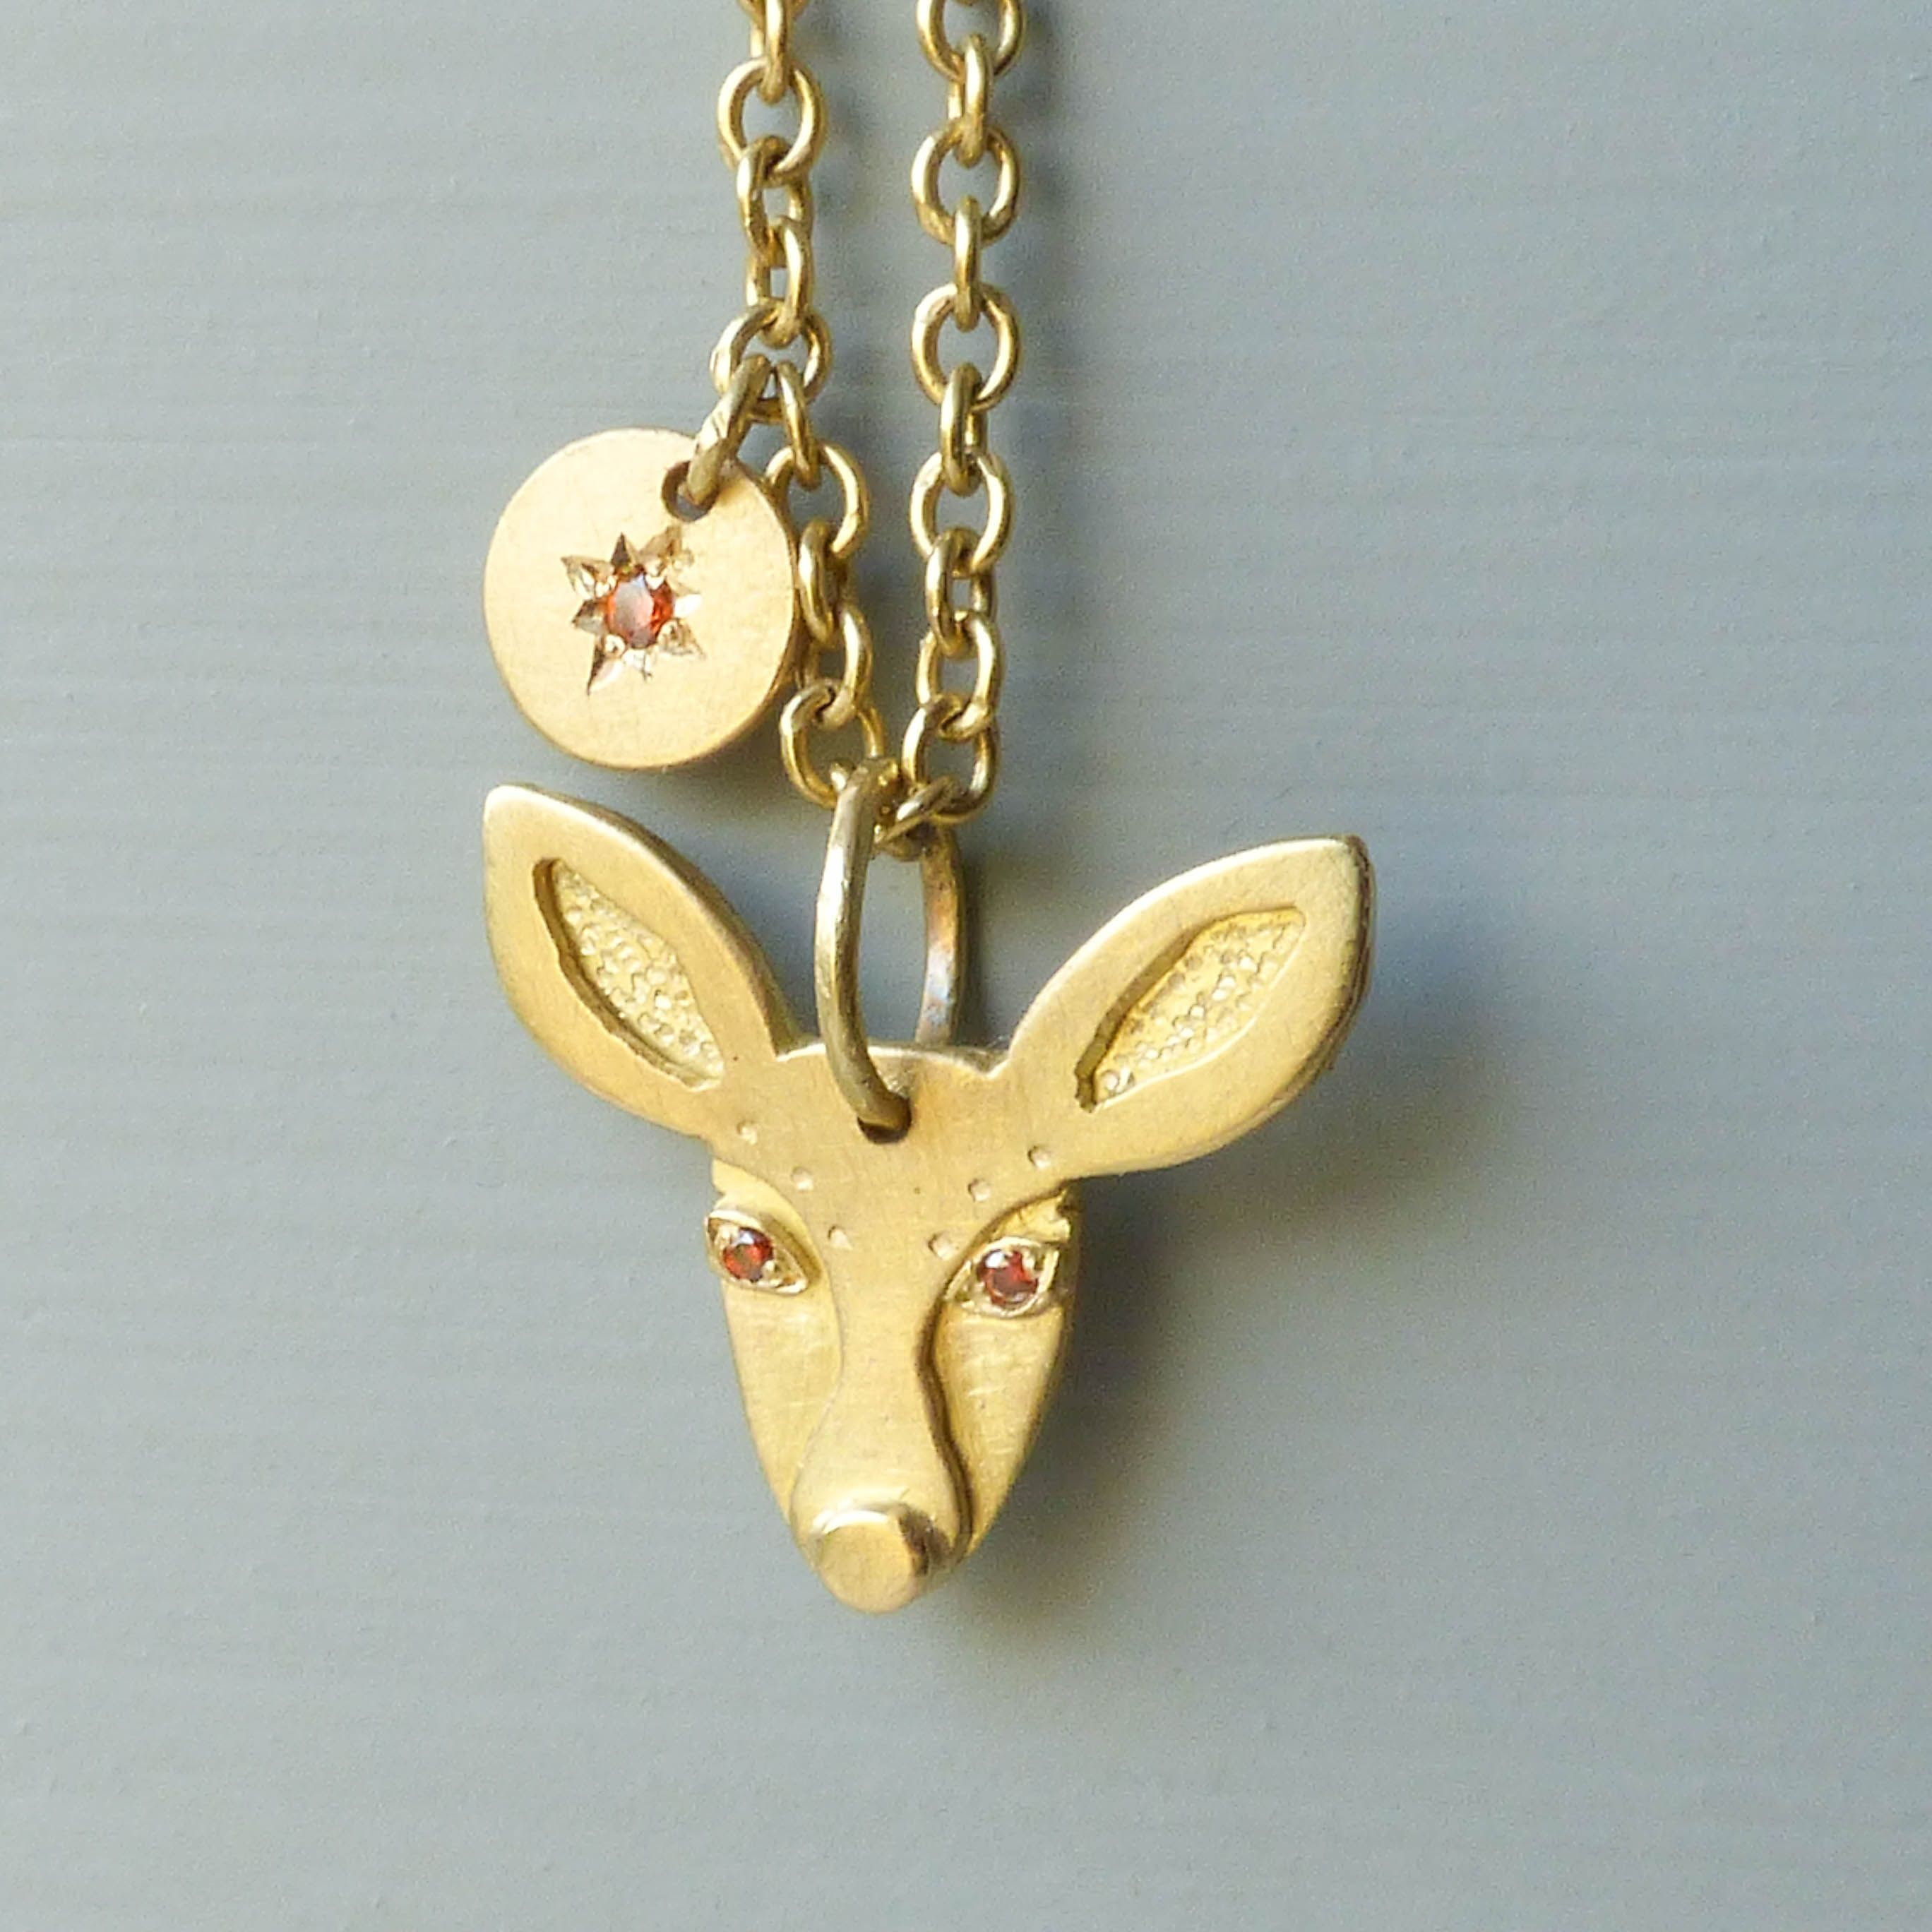 Fae is part of my Animal Amulets Collection which is inspired by the